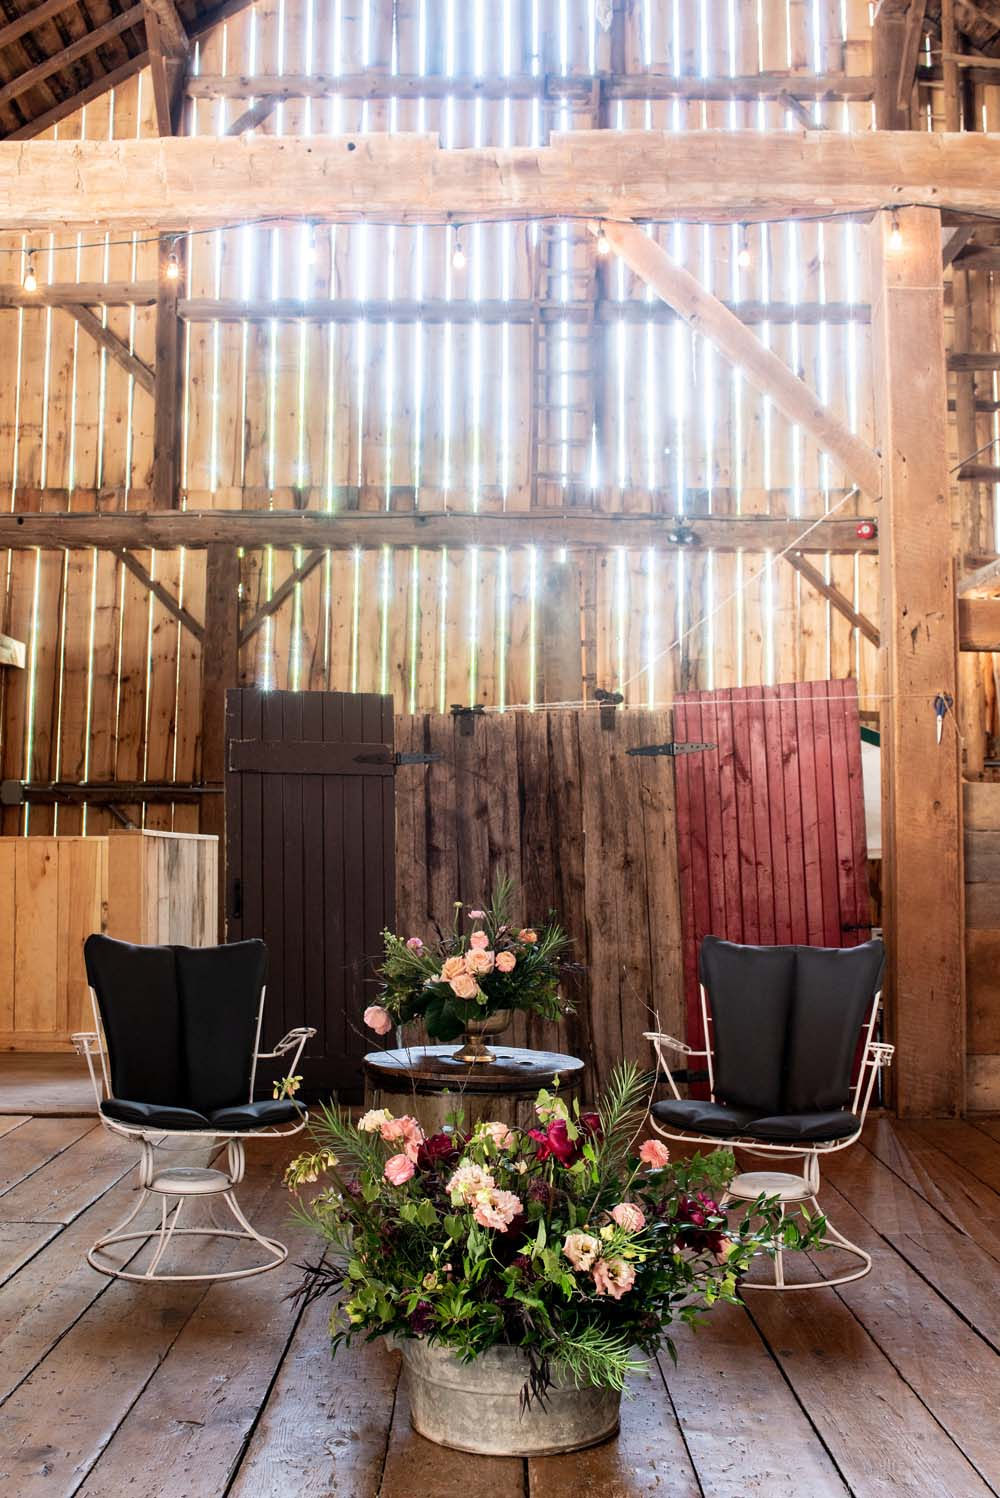 A Quirky Non-Traditional Wedding in Kitchener, Ontario - Chairs and floral